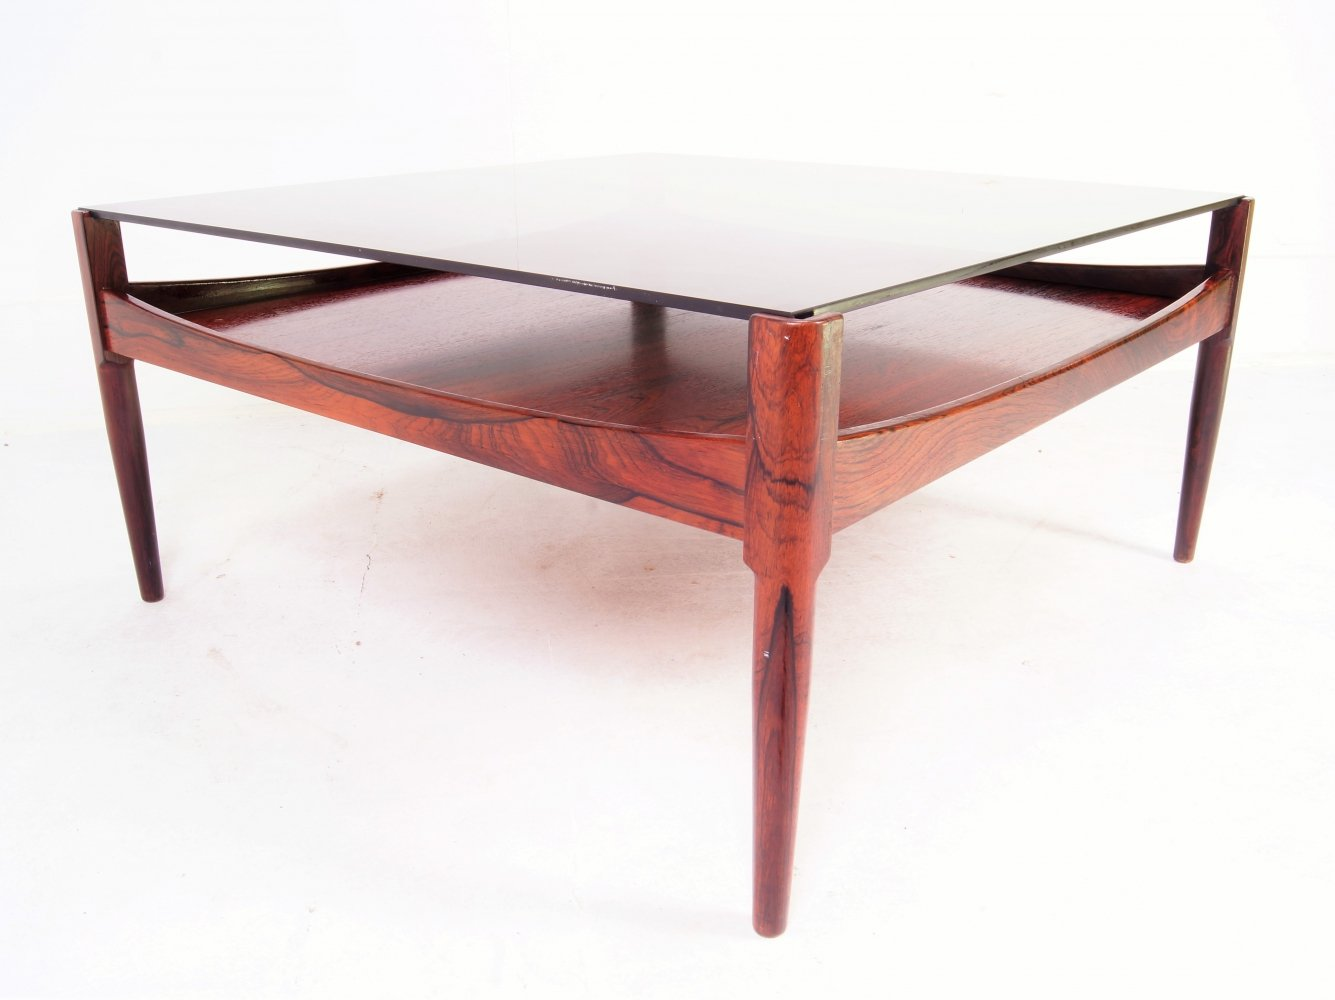 Rosewood coffeetable with smoked glass tabletop